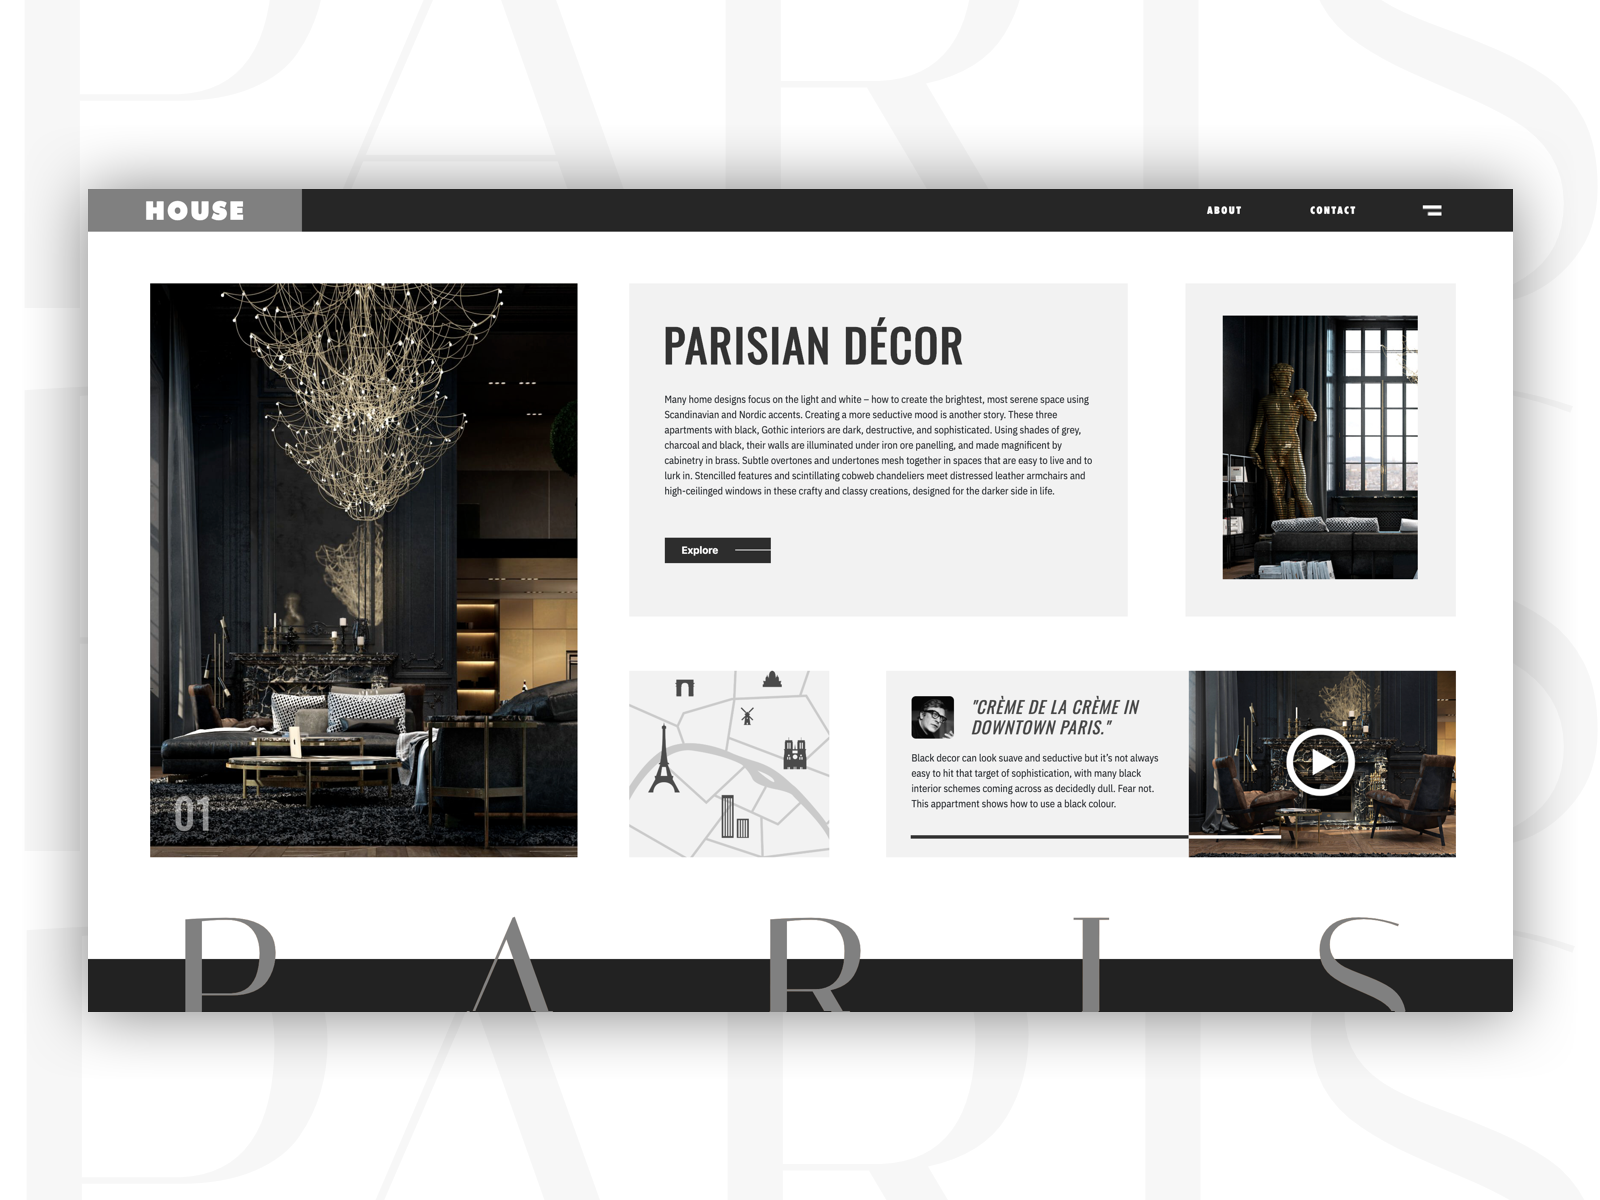 Housing Webdesign Grey Color Pallet By Tai Tang On Dribbble